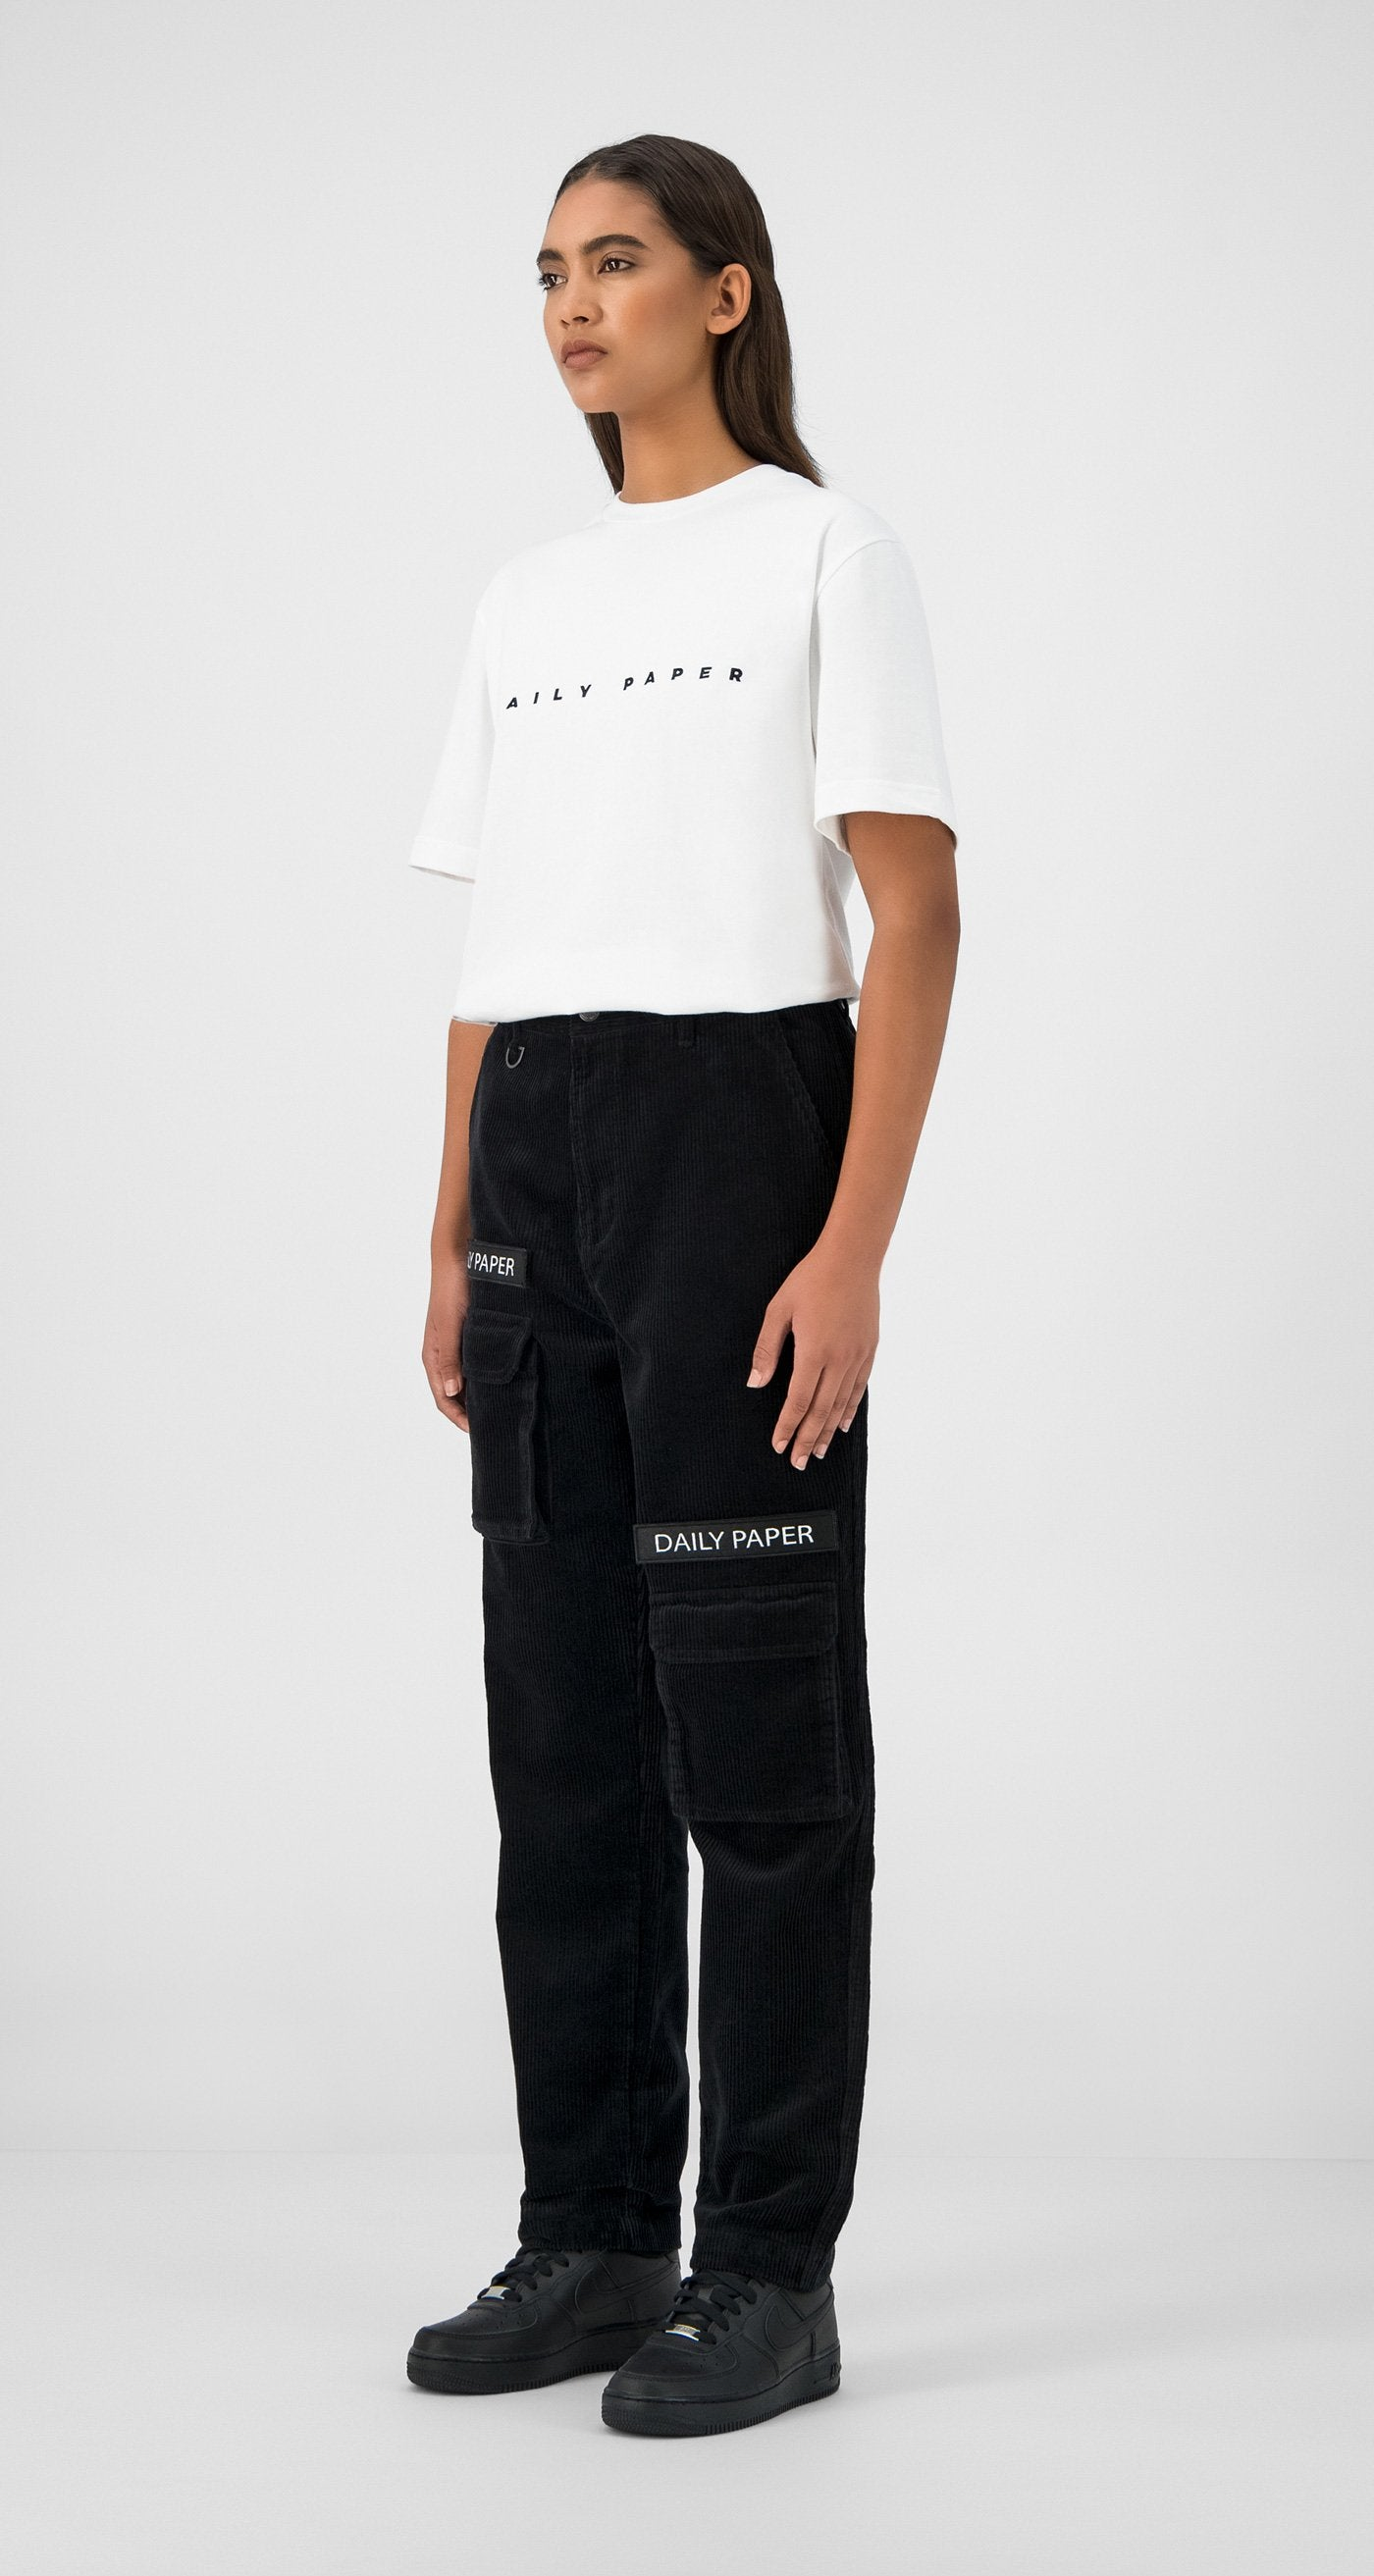 Daily Paper - Black Corduroy Cargo Pants Women